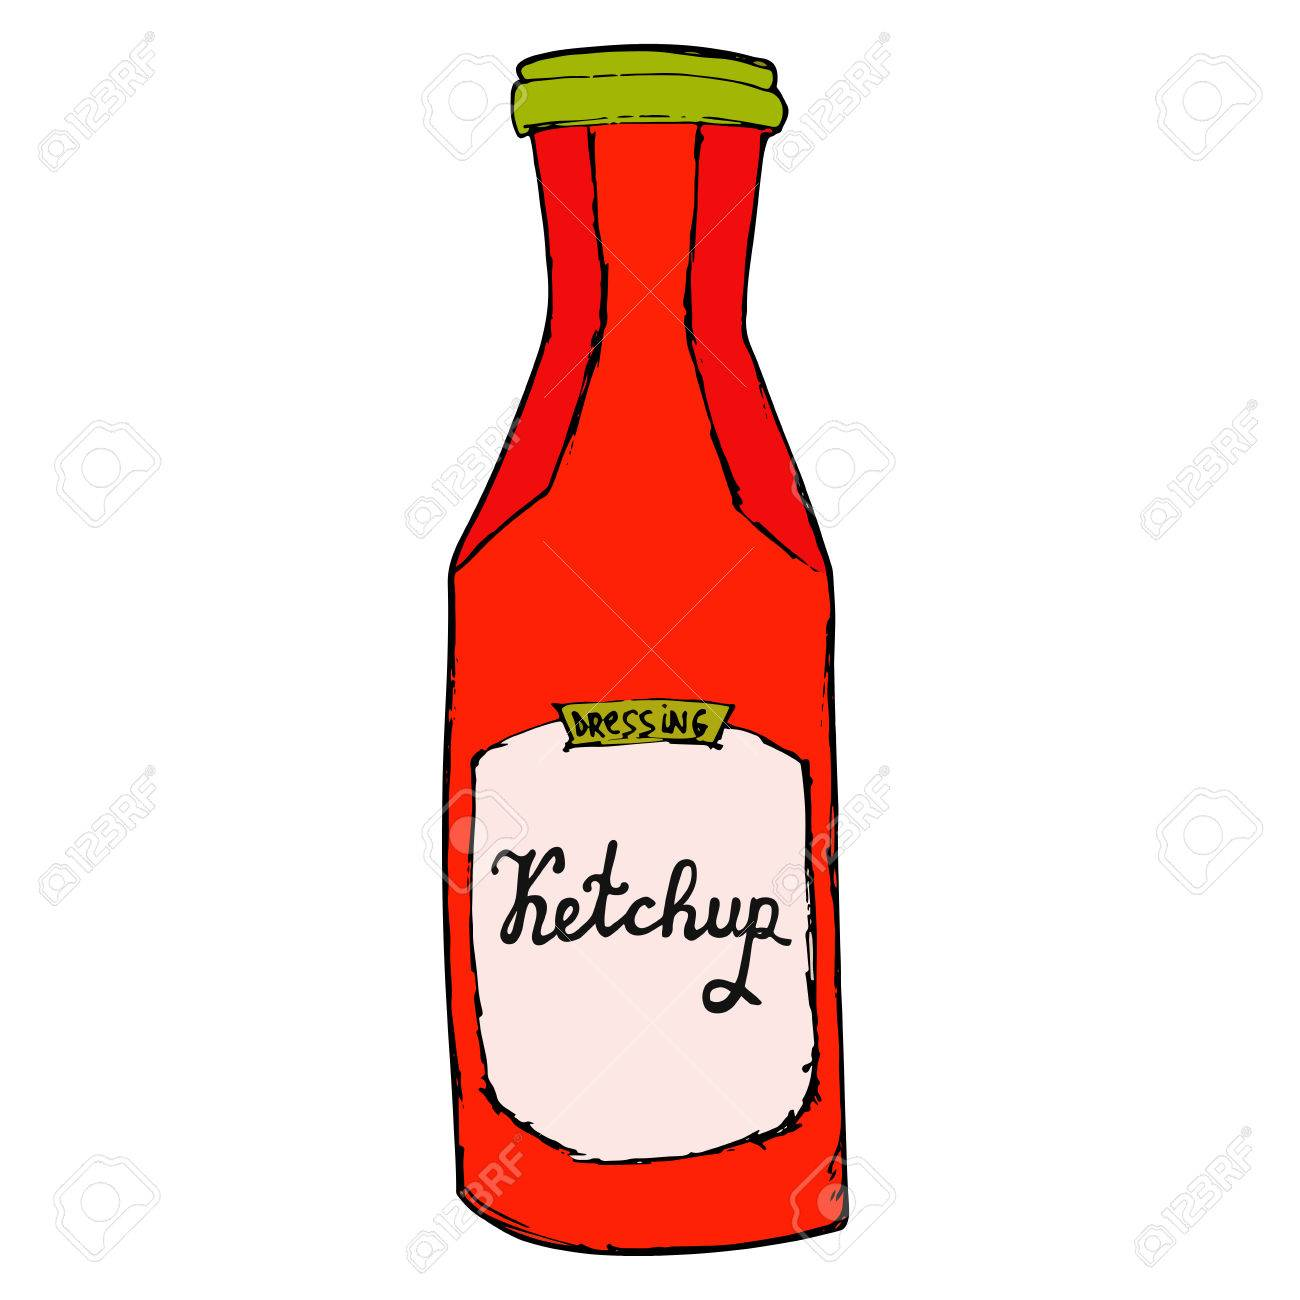 Ketchup bottle. Hand drawn tomato sauce jar sketchy illustration..